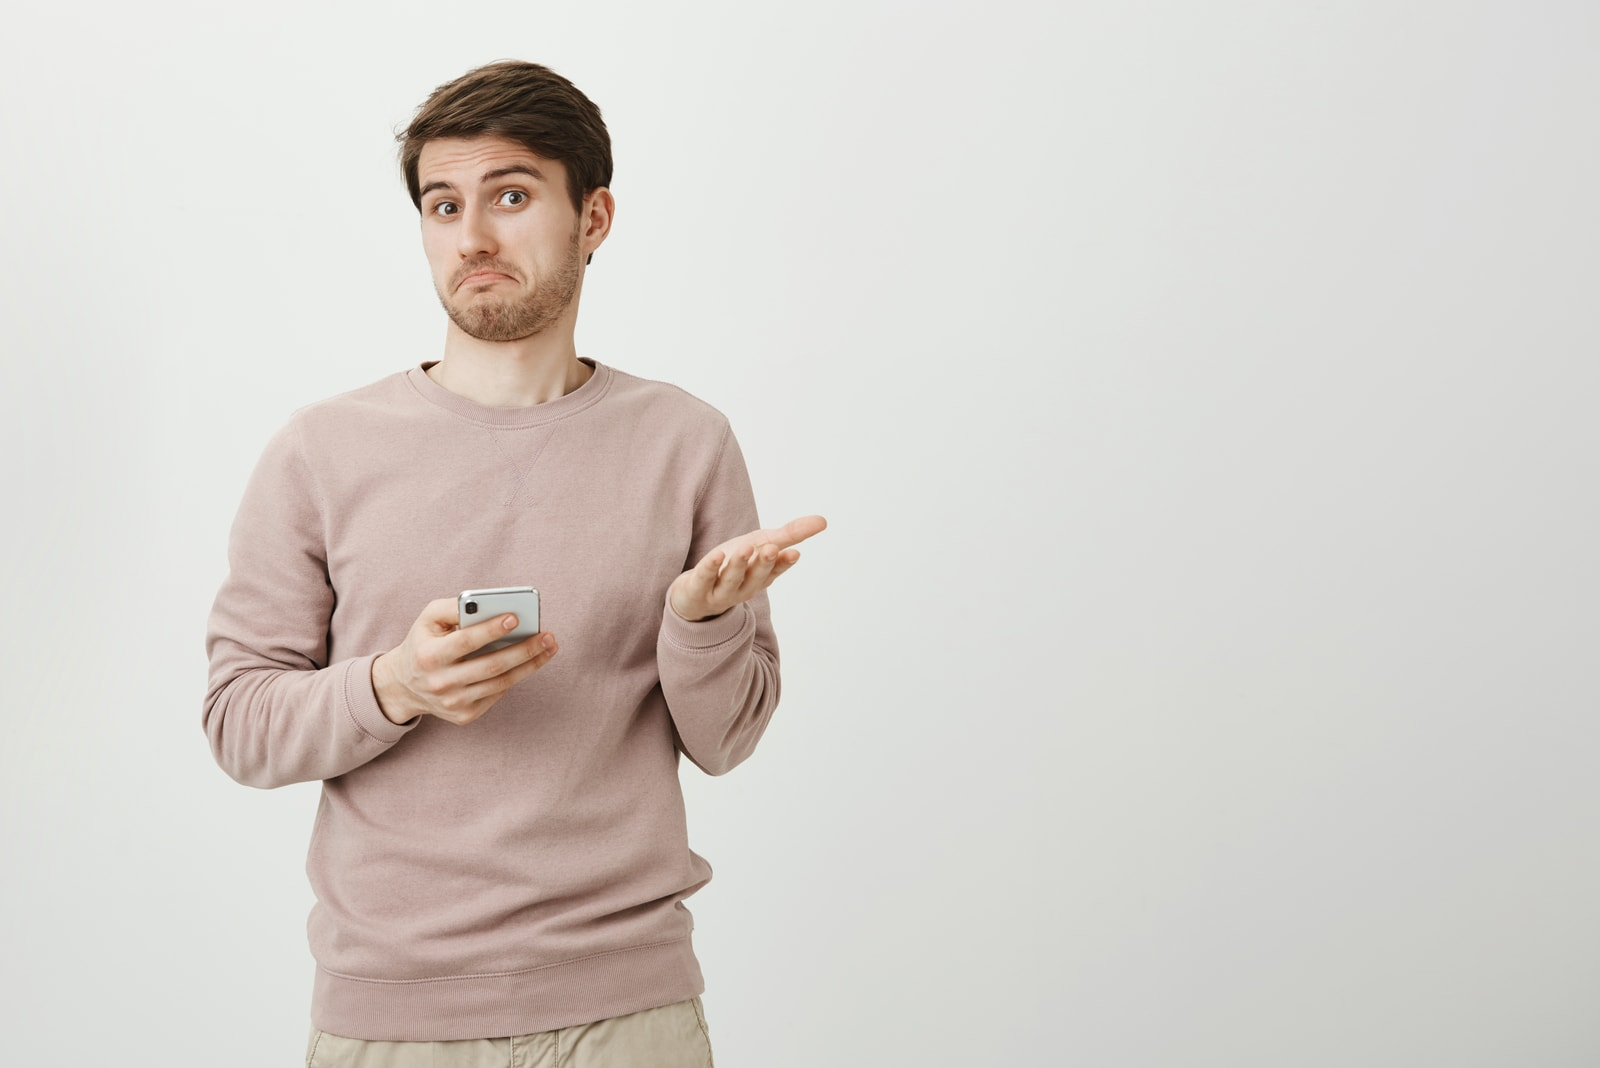 confused man looking at camera while holding a phone